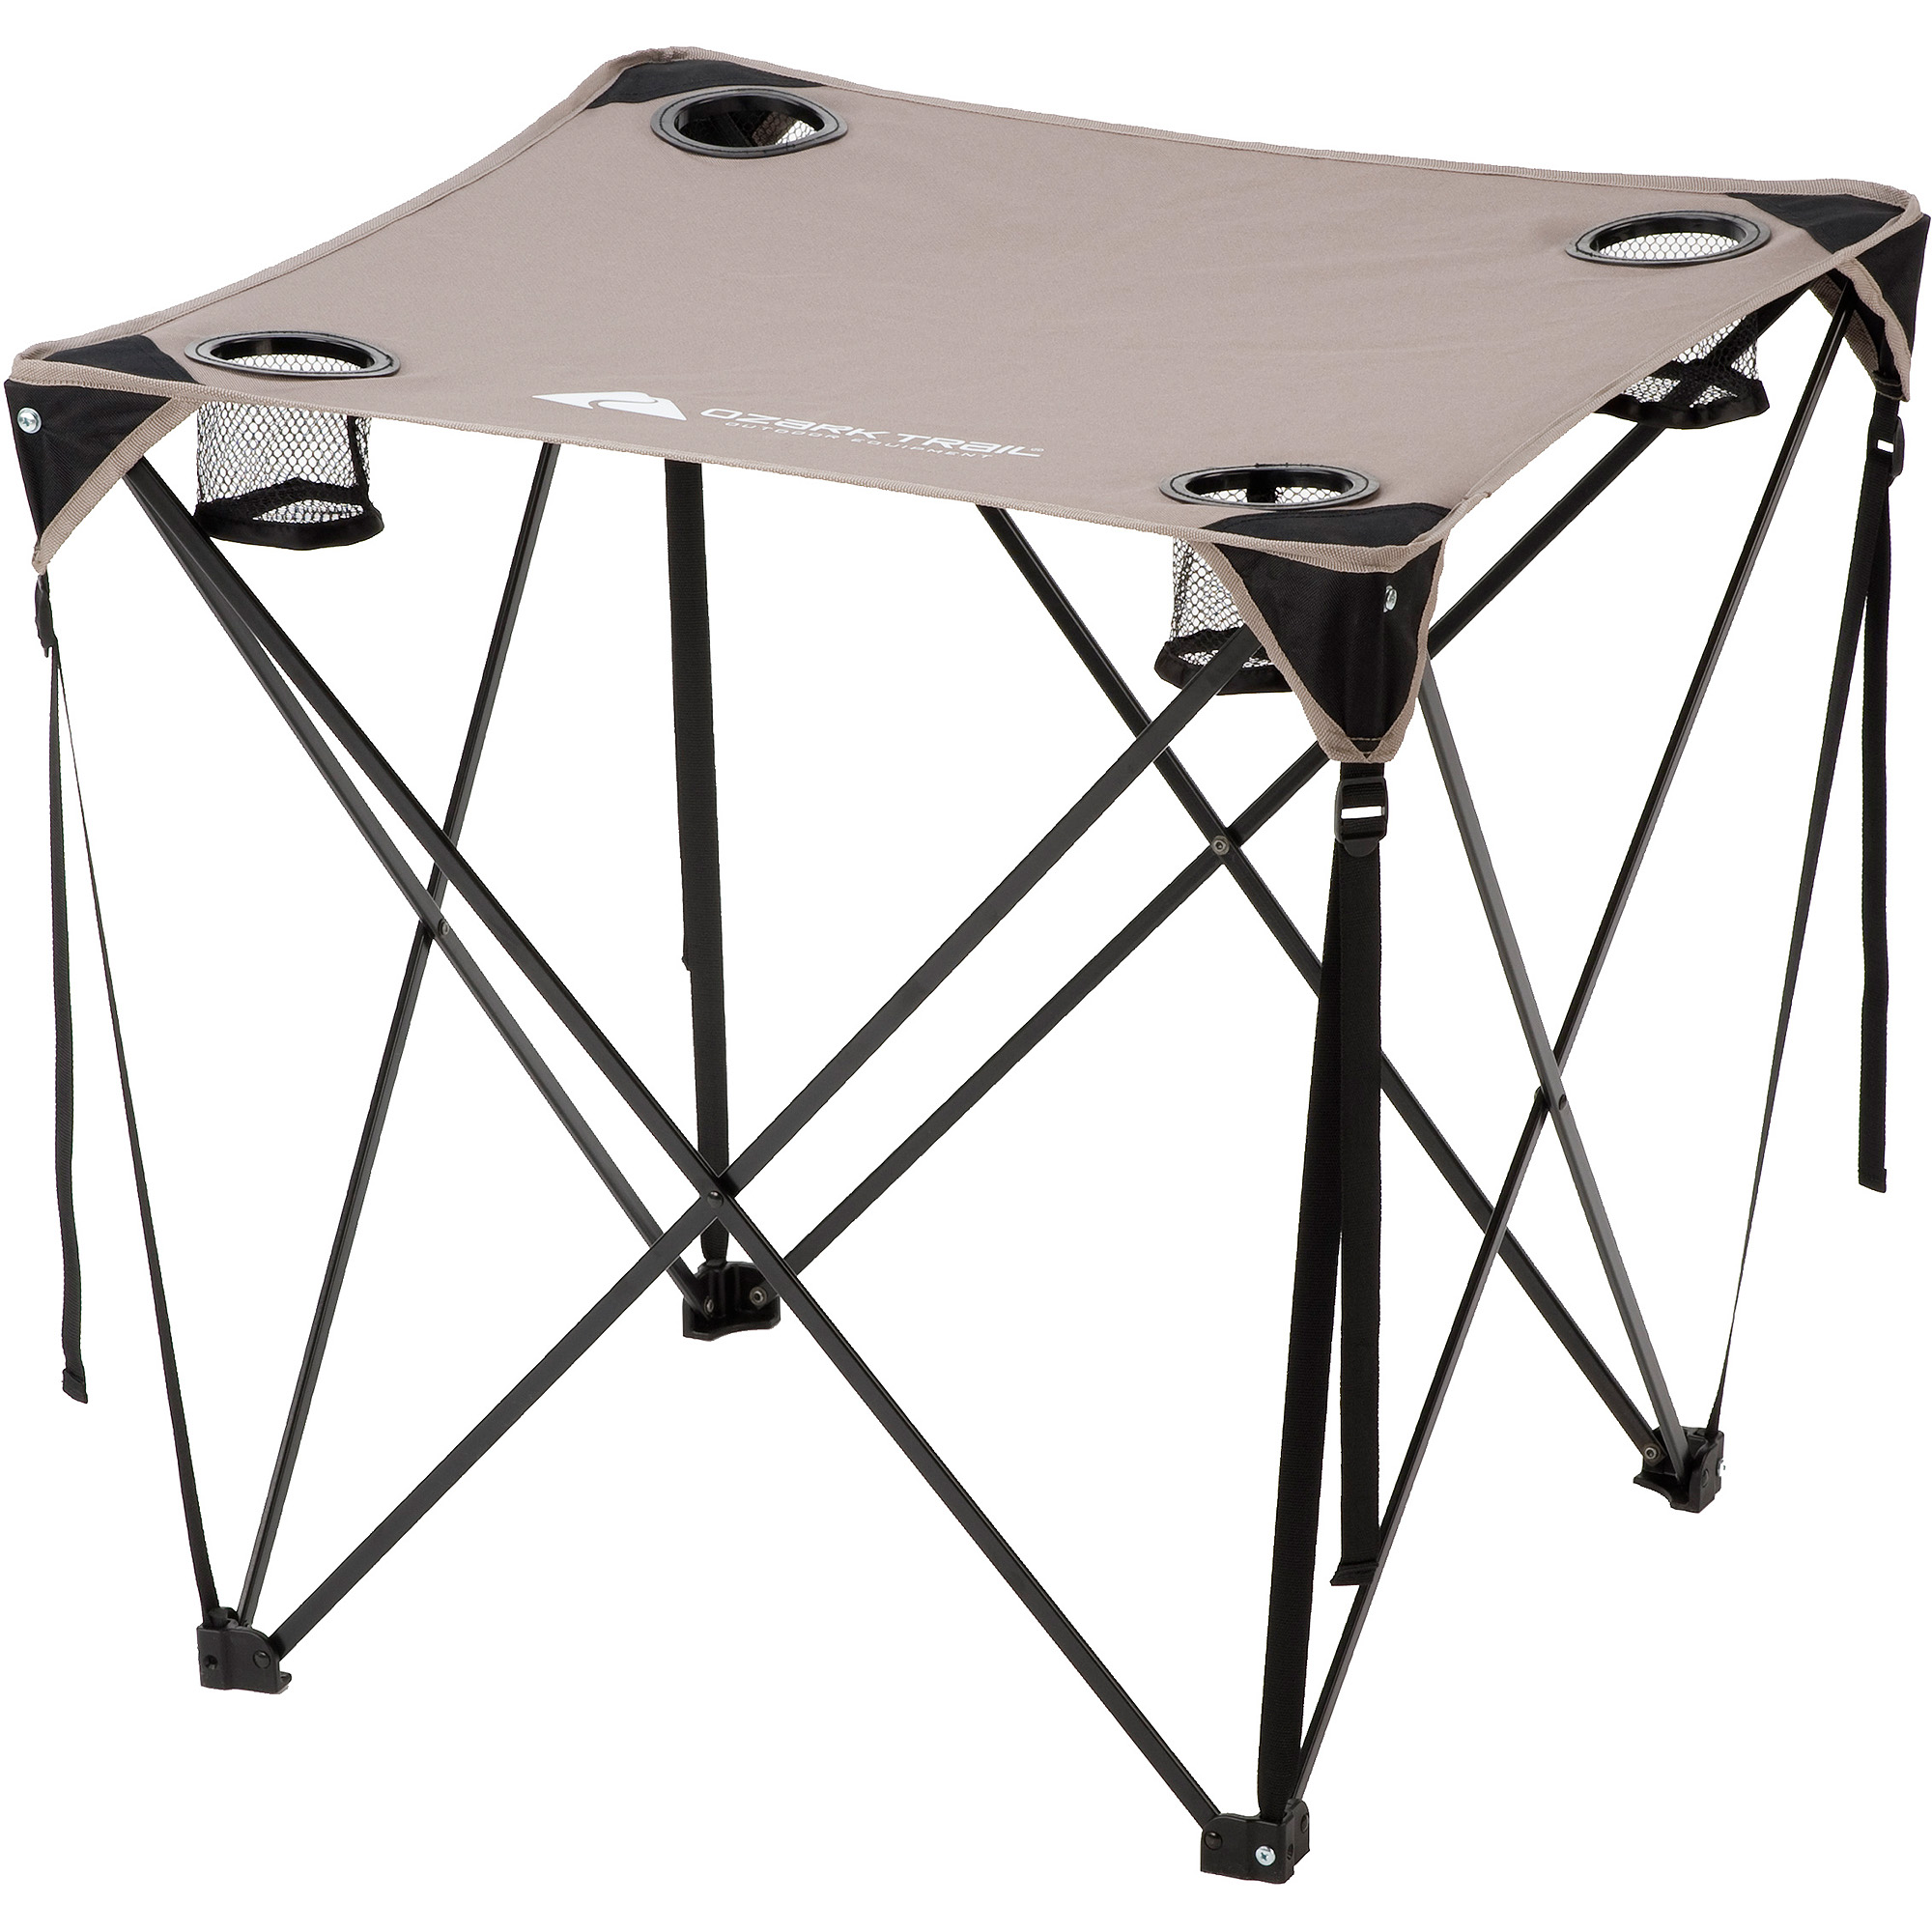 Ozark Trail Quad Table, Grey